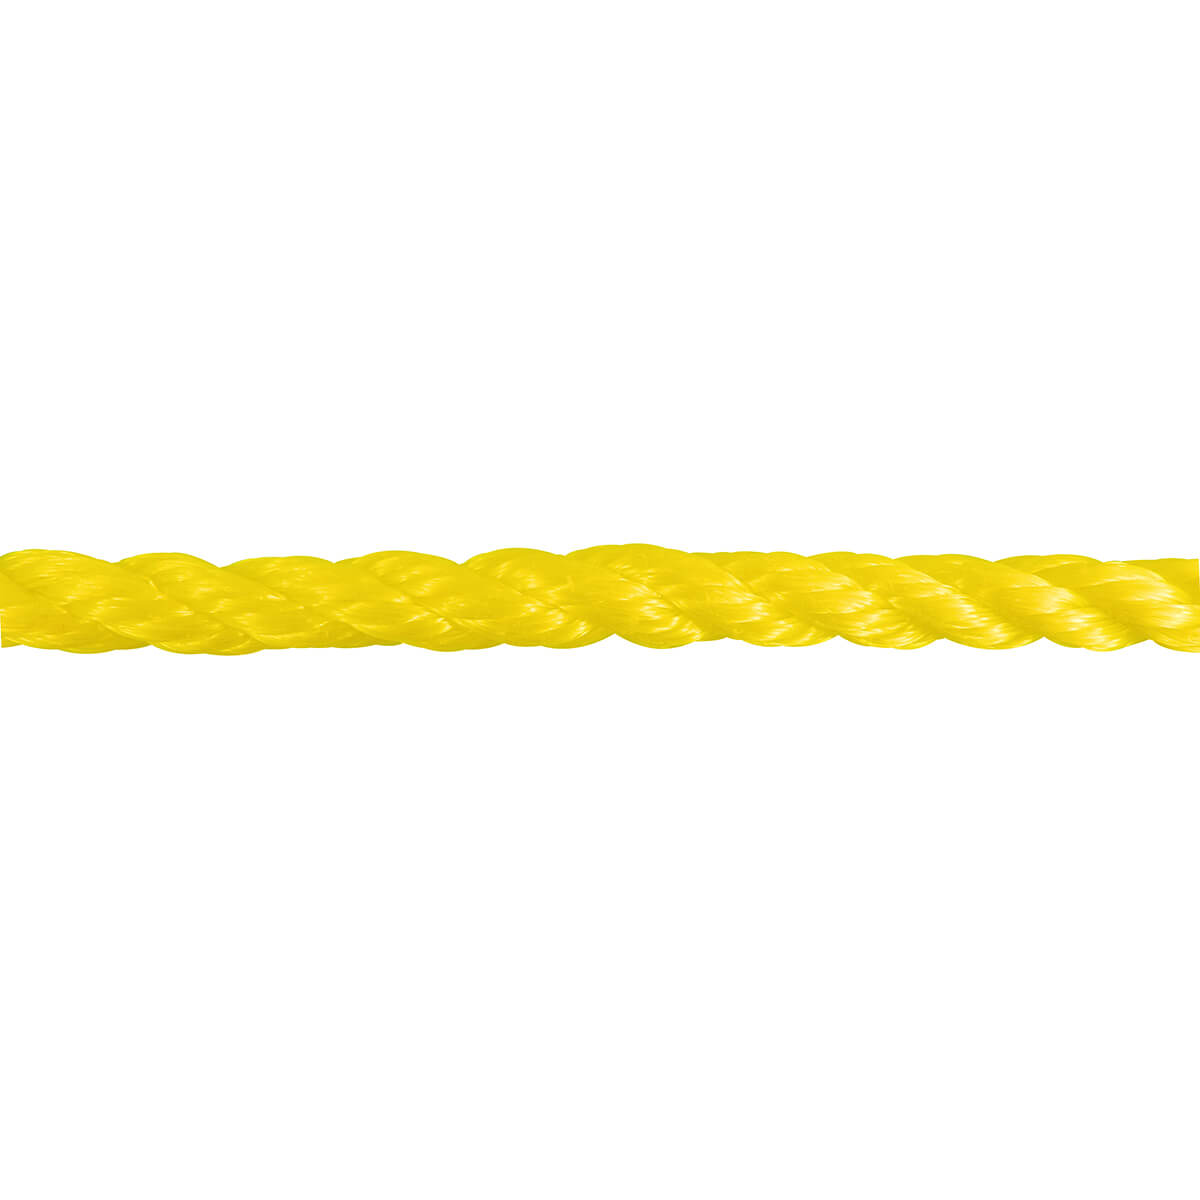 "Polypropylene Twisted Rope - Yellow - 1/4"" (price per foot)"